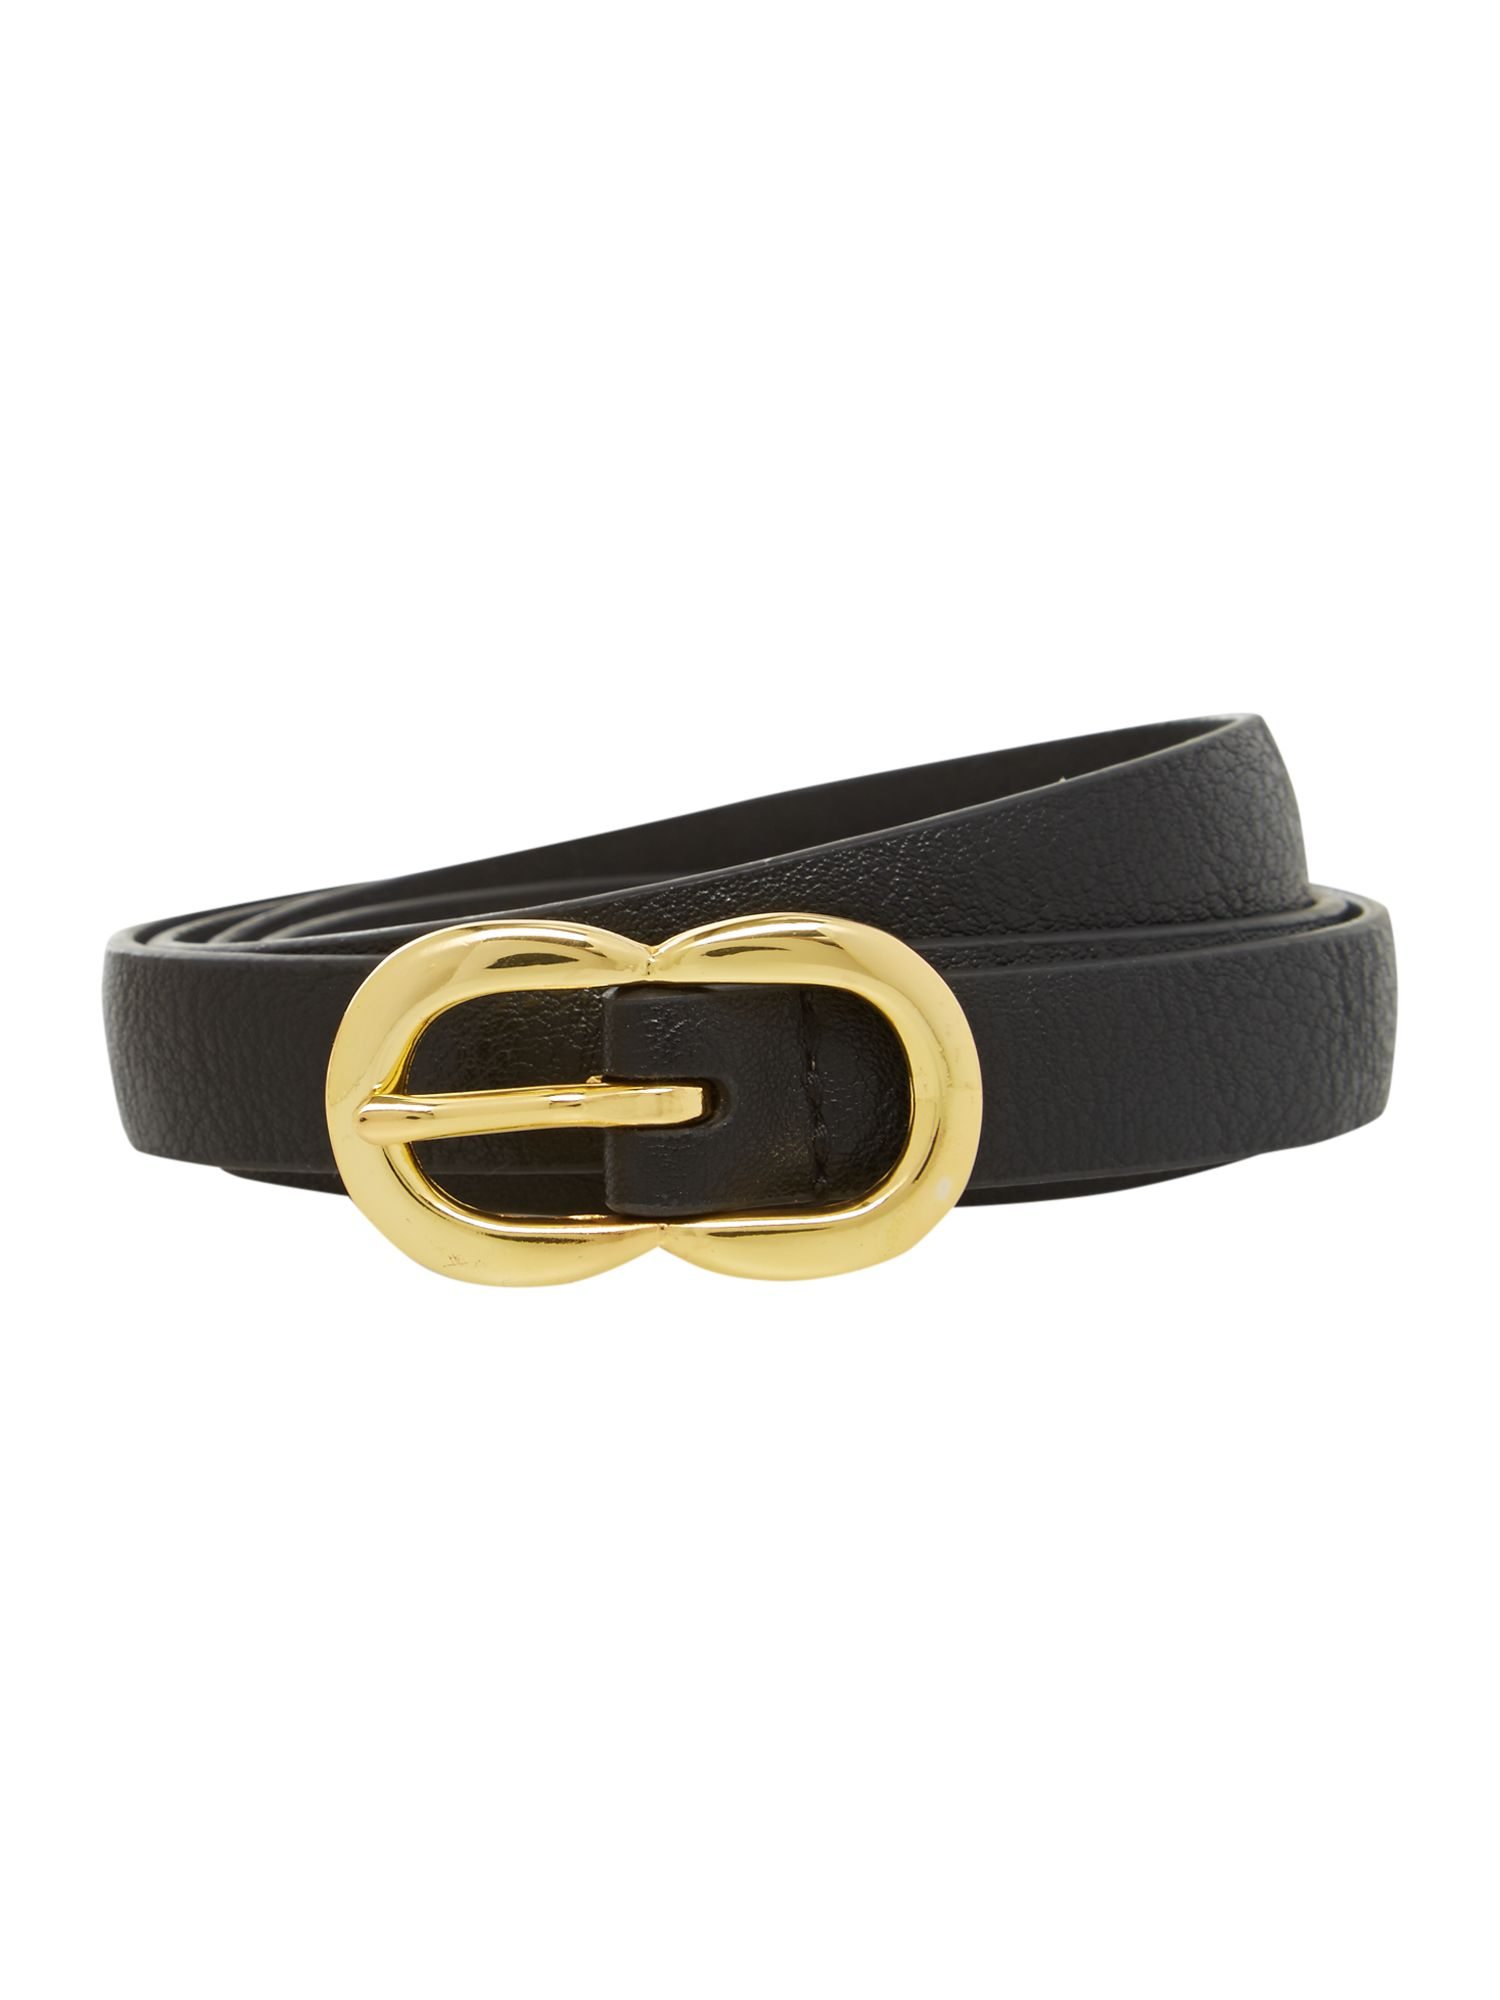 Black double buckle small leather belt